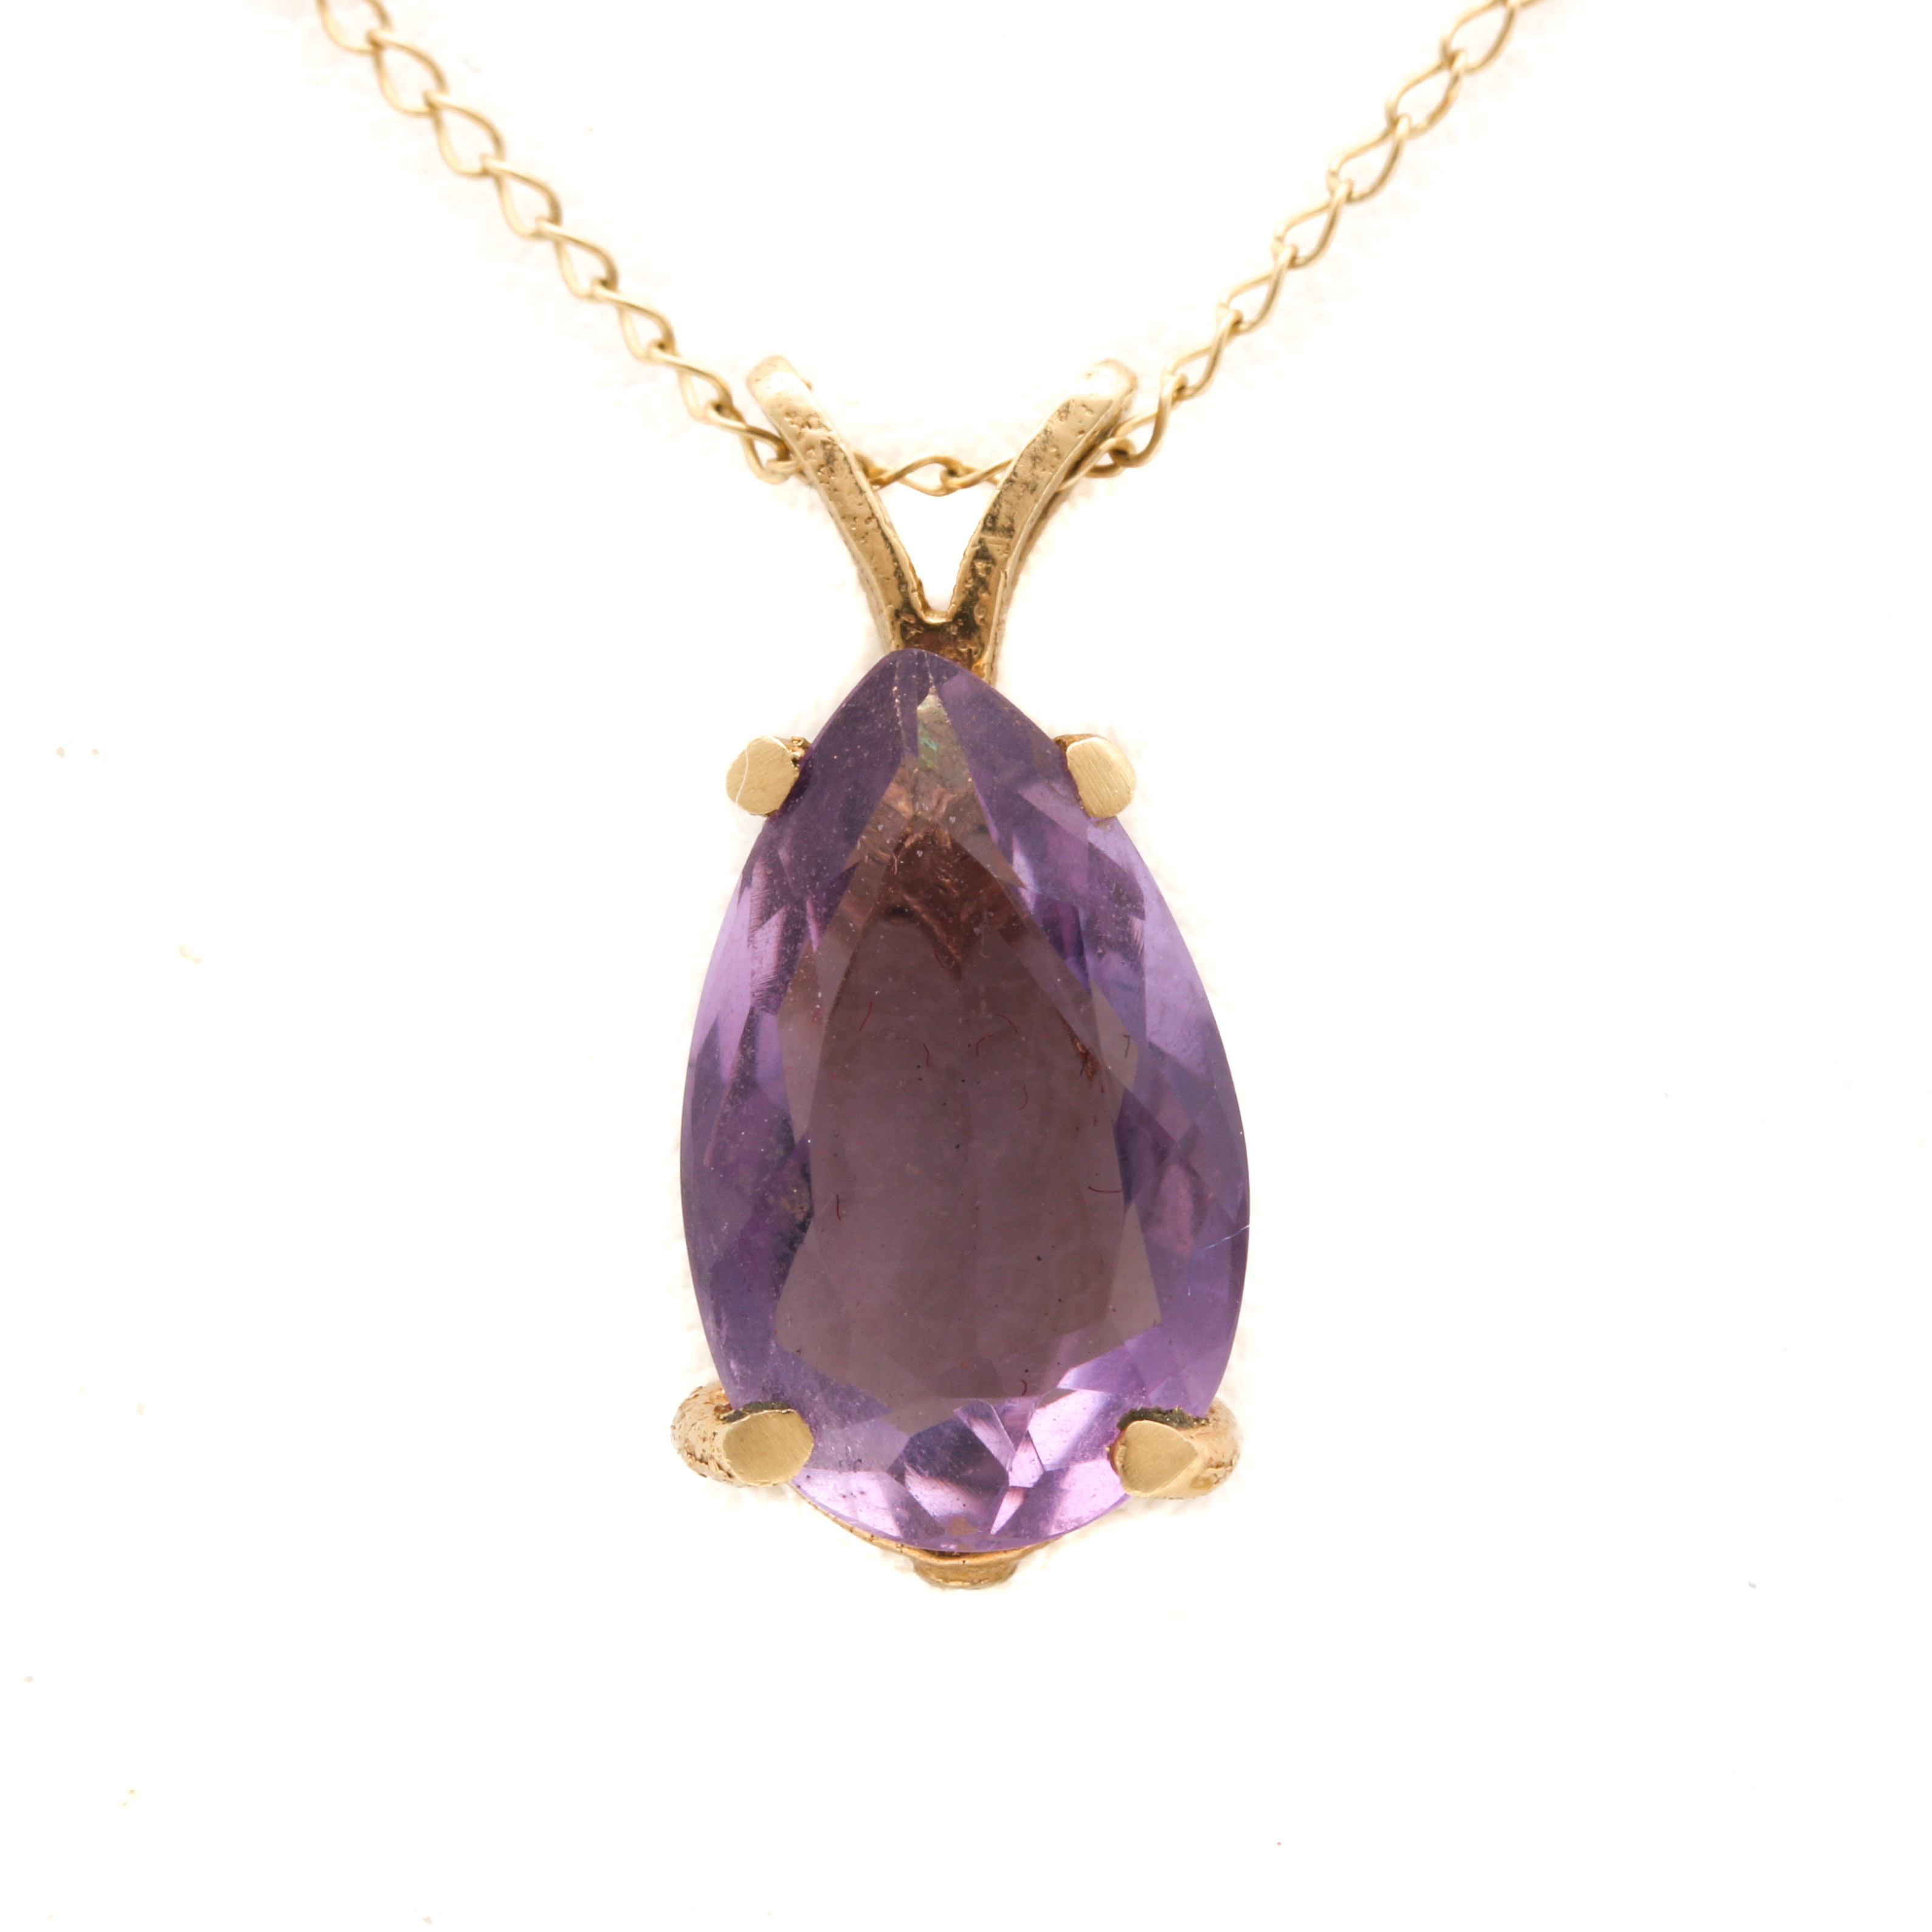 14K Yellow Gold 2.28 CT Amethyst Pendant Necklace